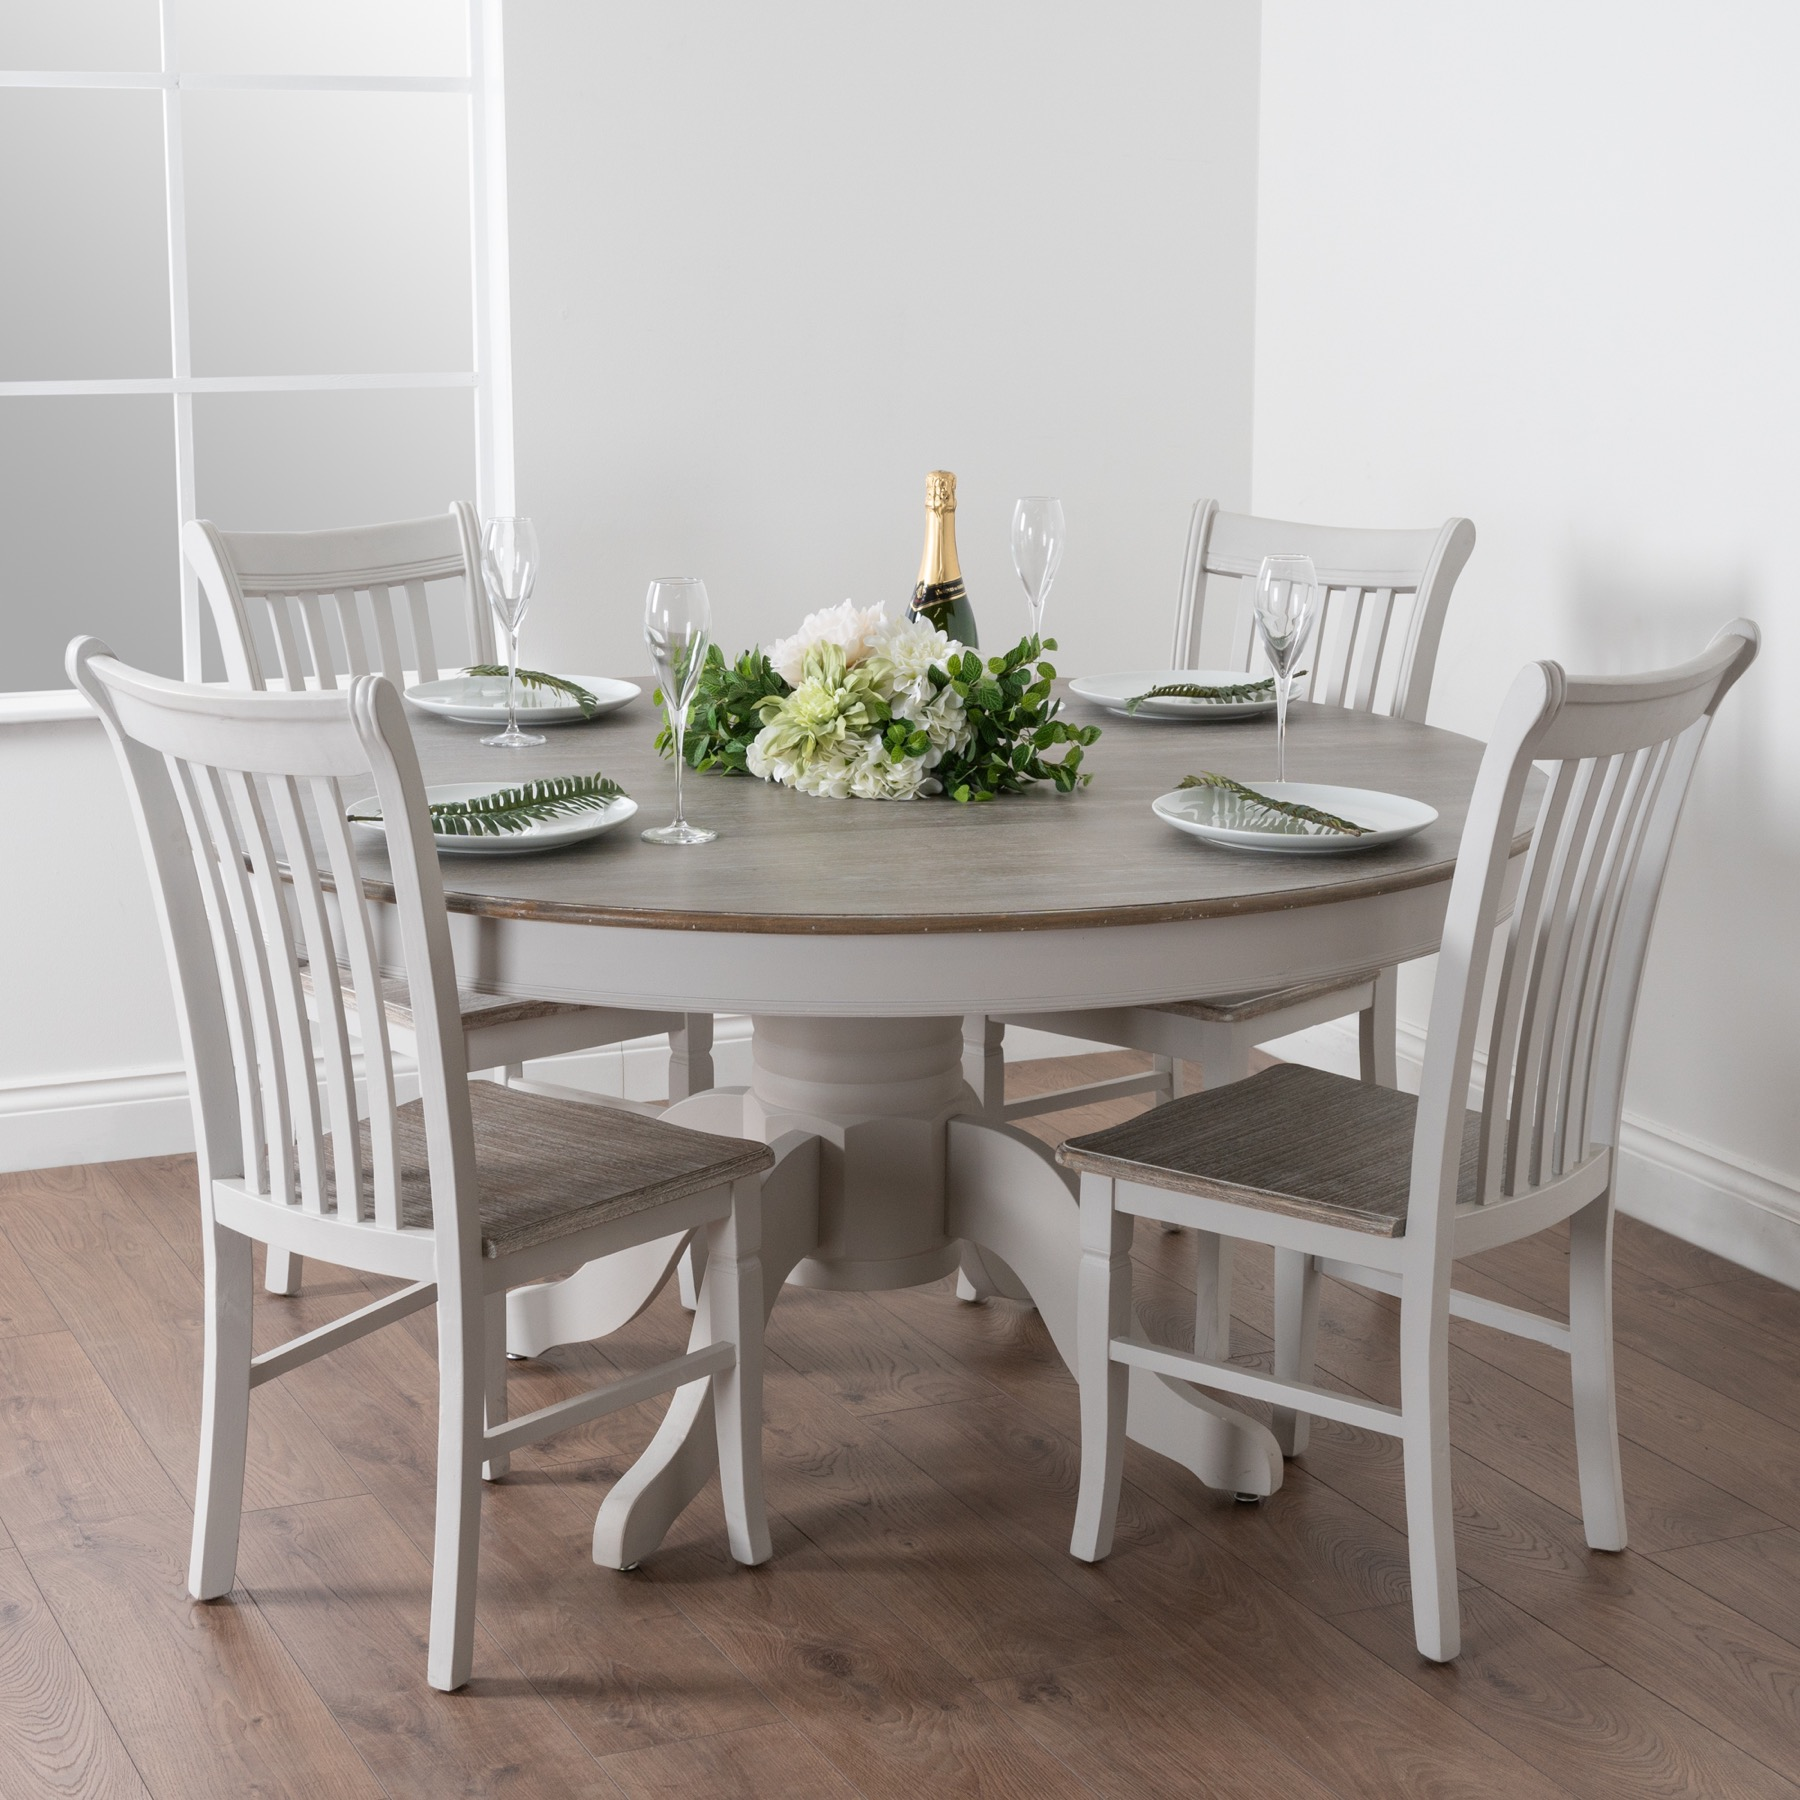 Large Round Dining Table, Round Kitchen Tables And Chairs Uk